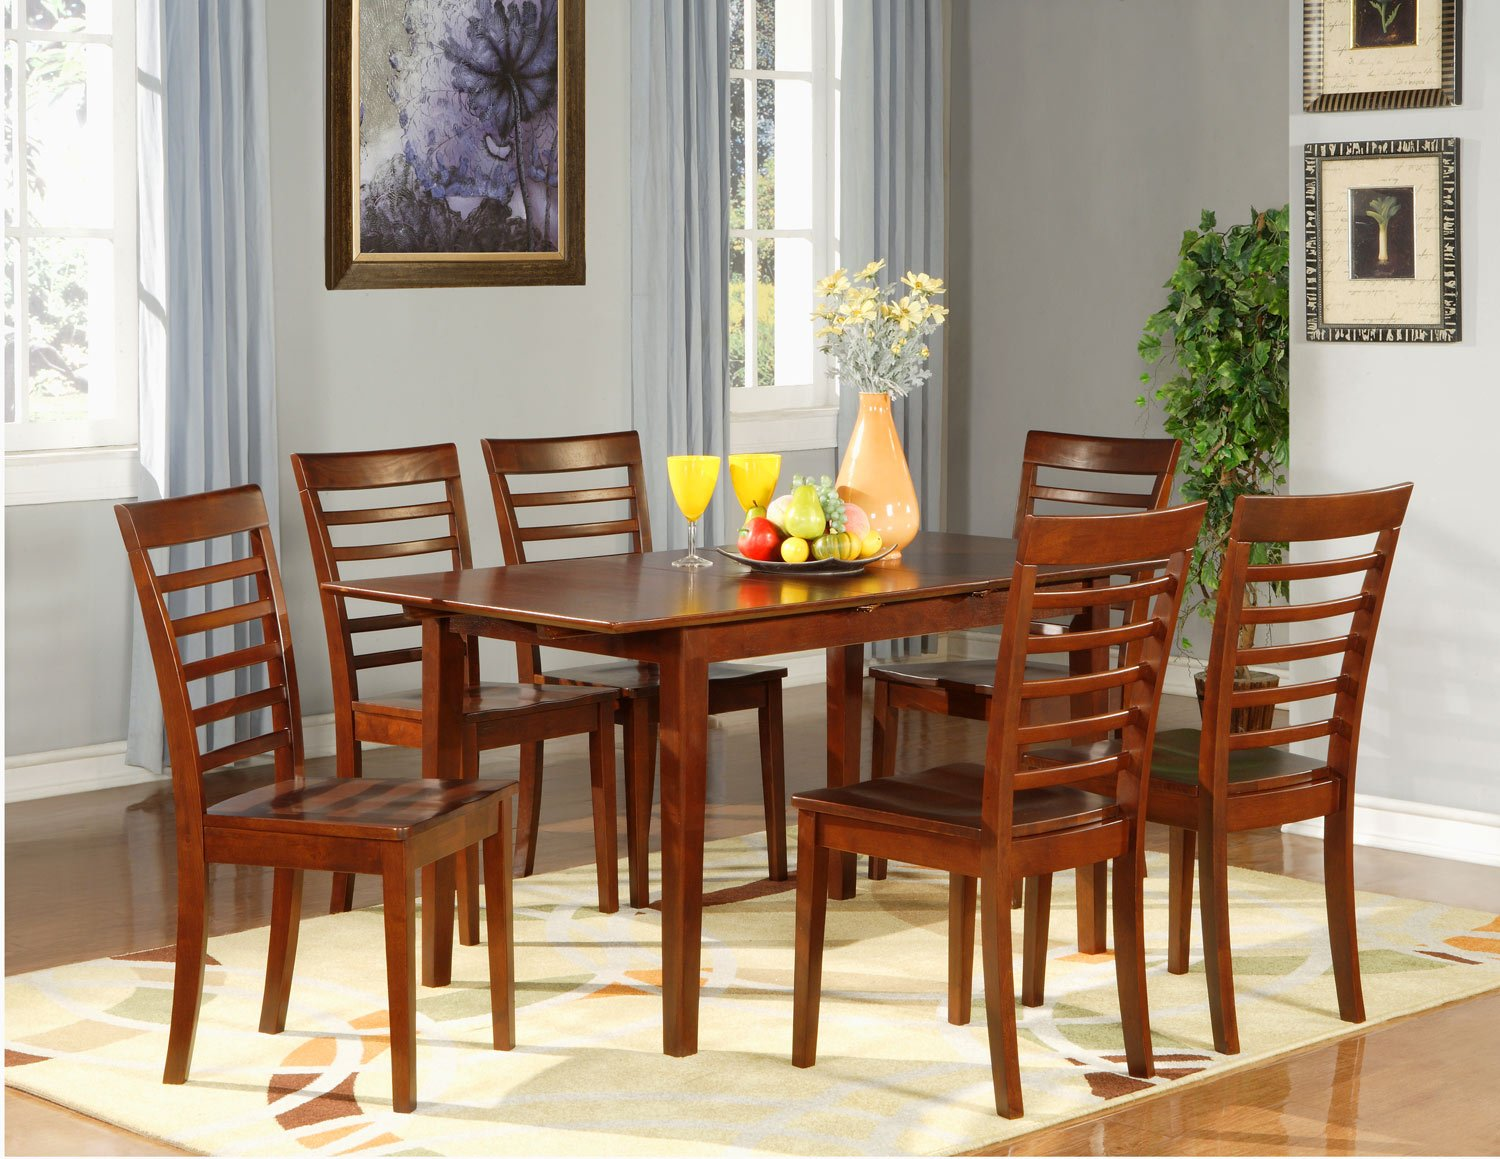 Picasso 5 Pc Rectangular Dinette Dining Table Set 32 X 60 With 12 Extension Leaf Sku Ps5 Mah